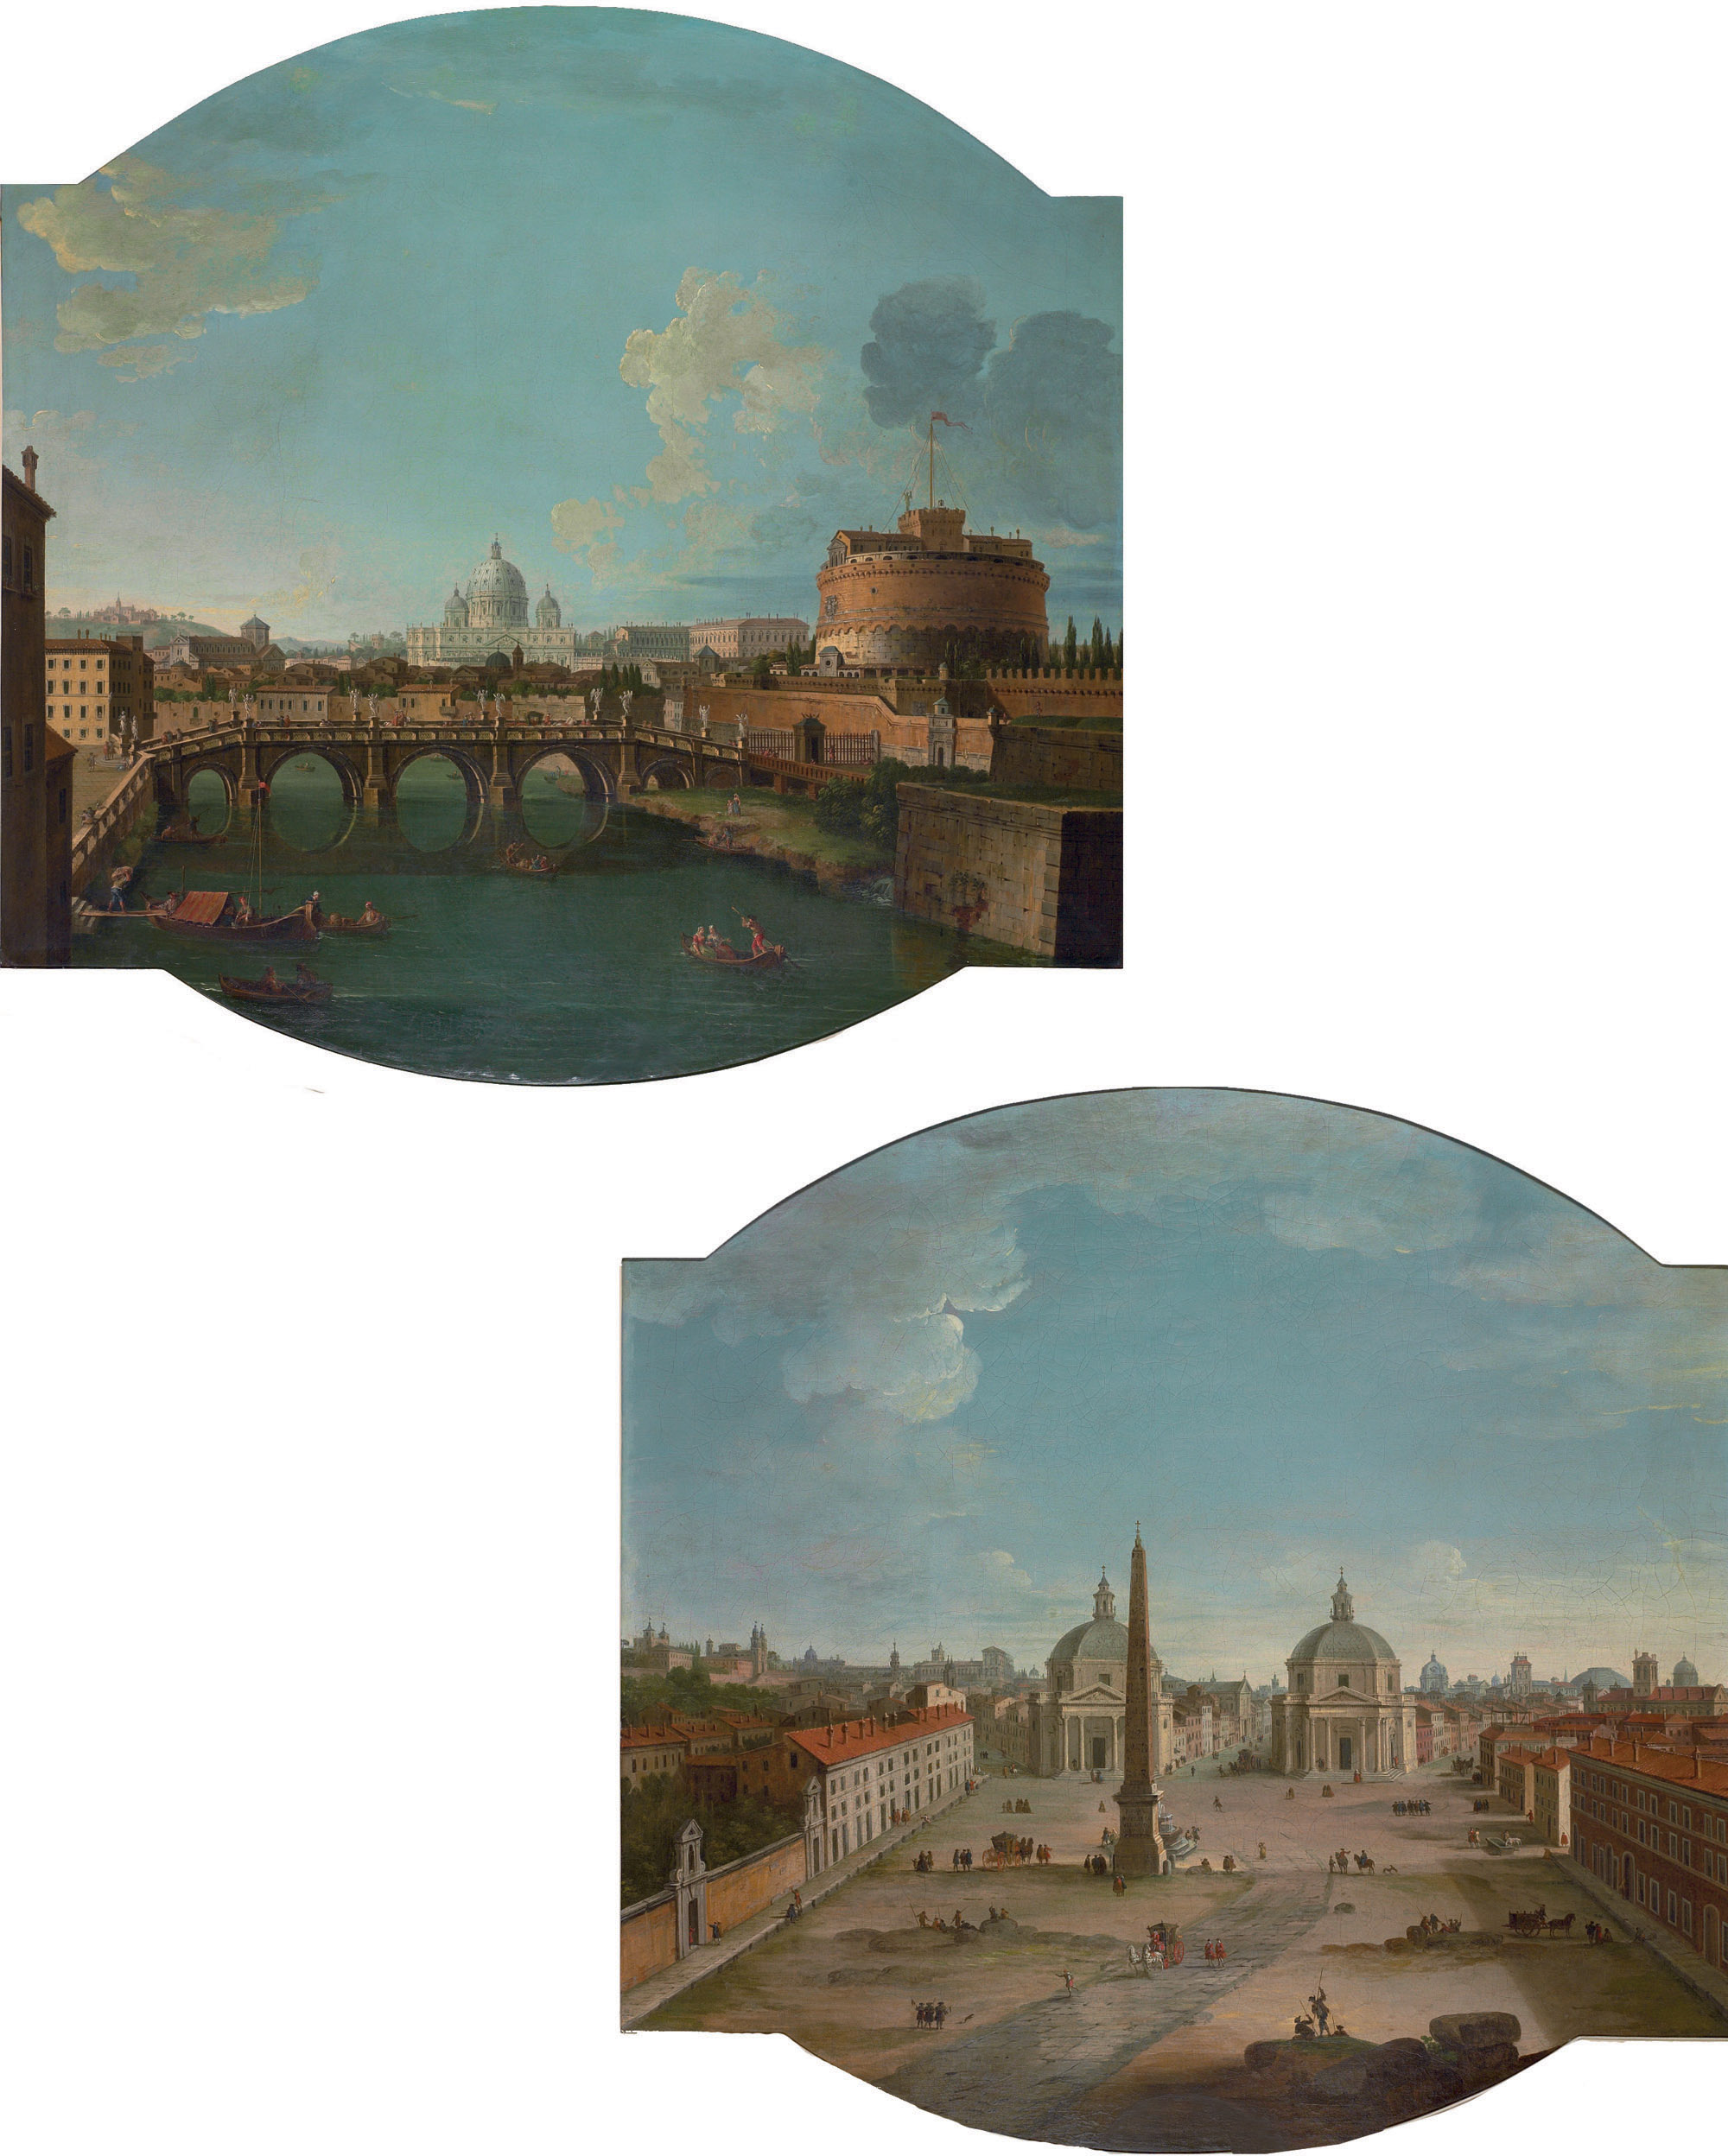 View of Piazza del Popolo, Rome; and View of the Ponte Sant'Angelo and Castel Sant'Angelo, with Saint Peter's Basilica beyond, Rome